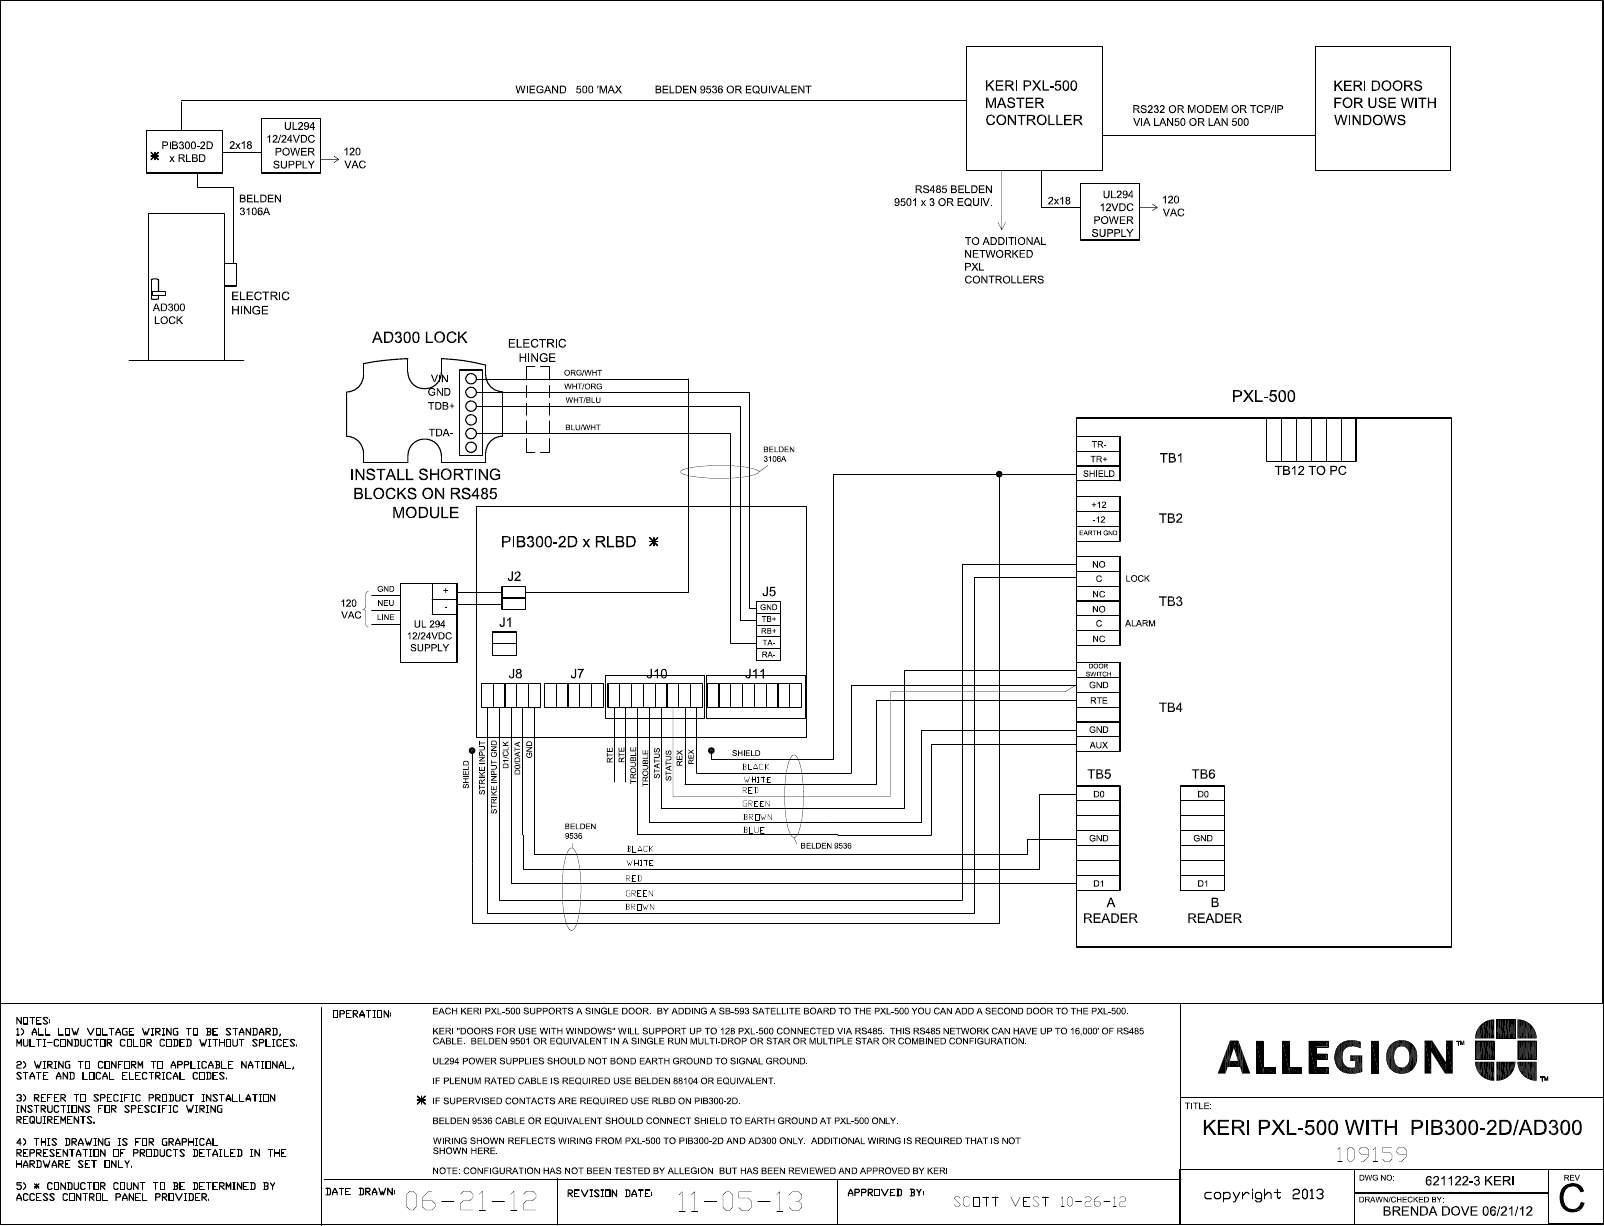 hight resolution of schlage electronics c ad 400 pim400 485 wiring diagram with keri